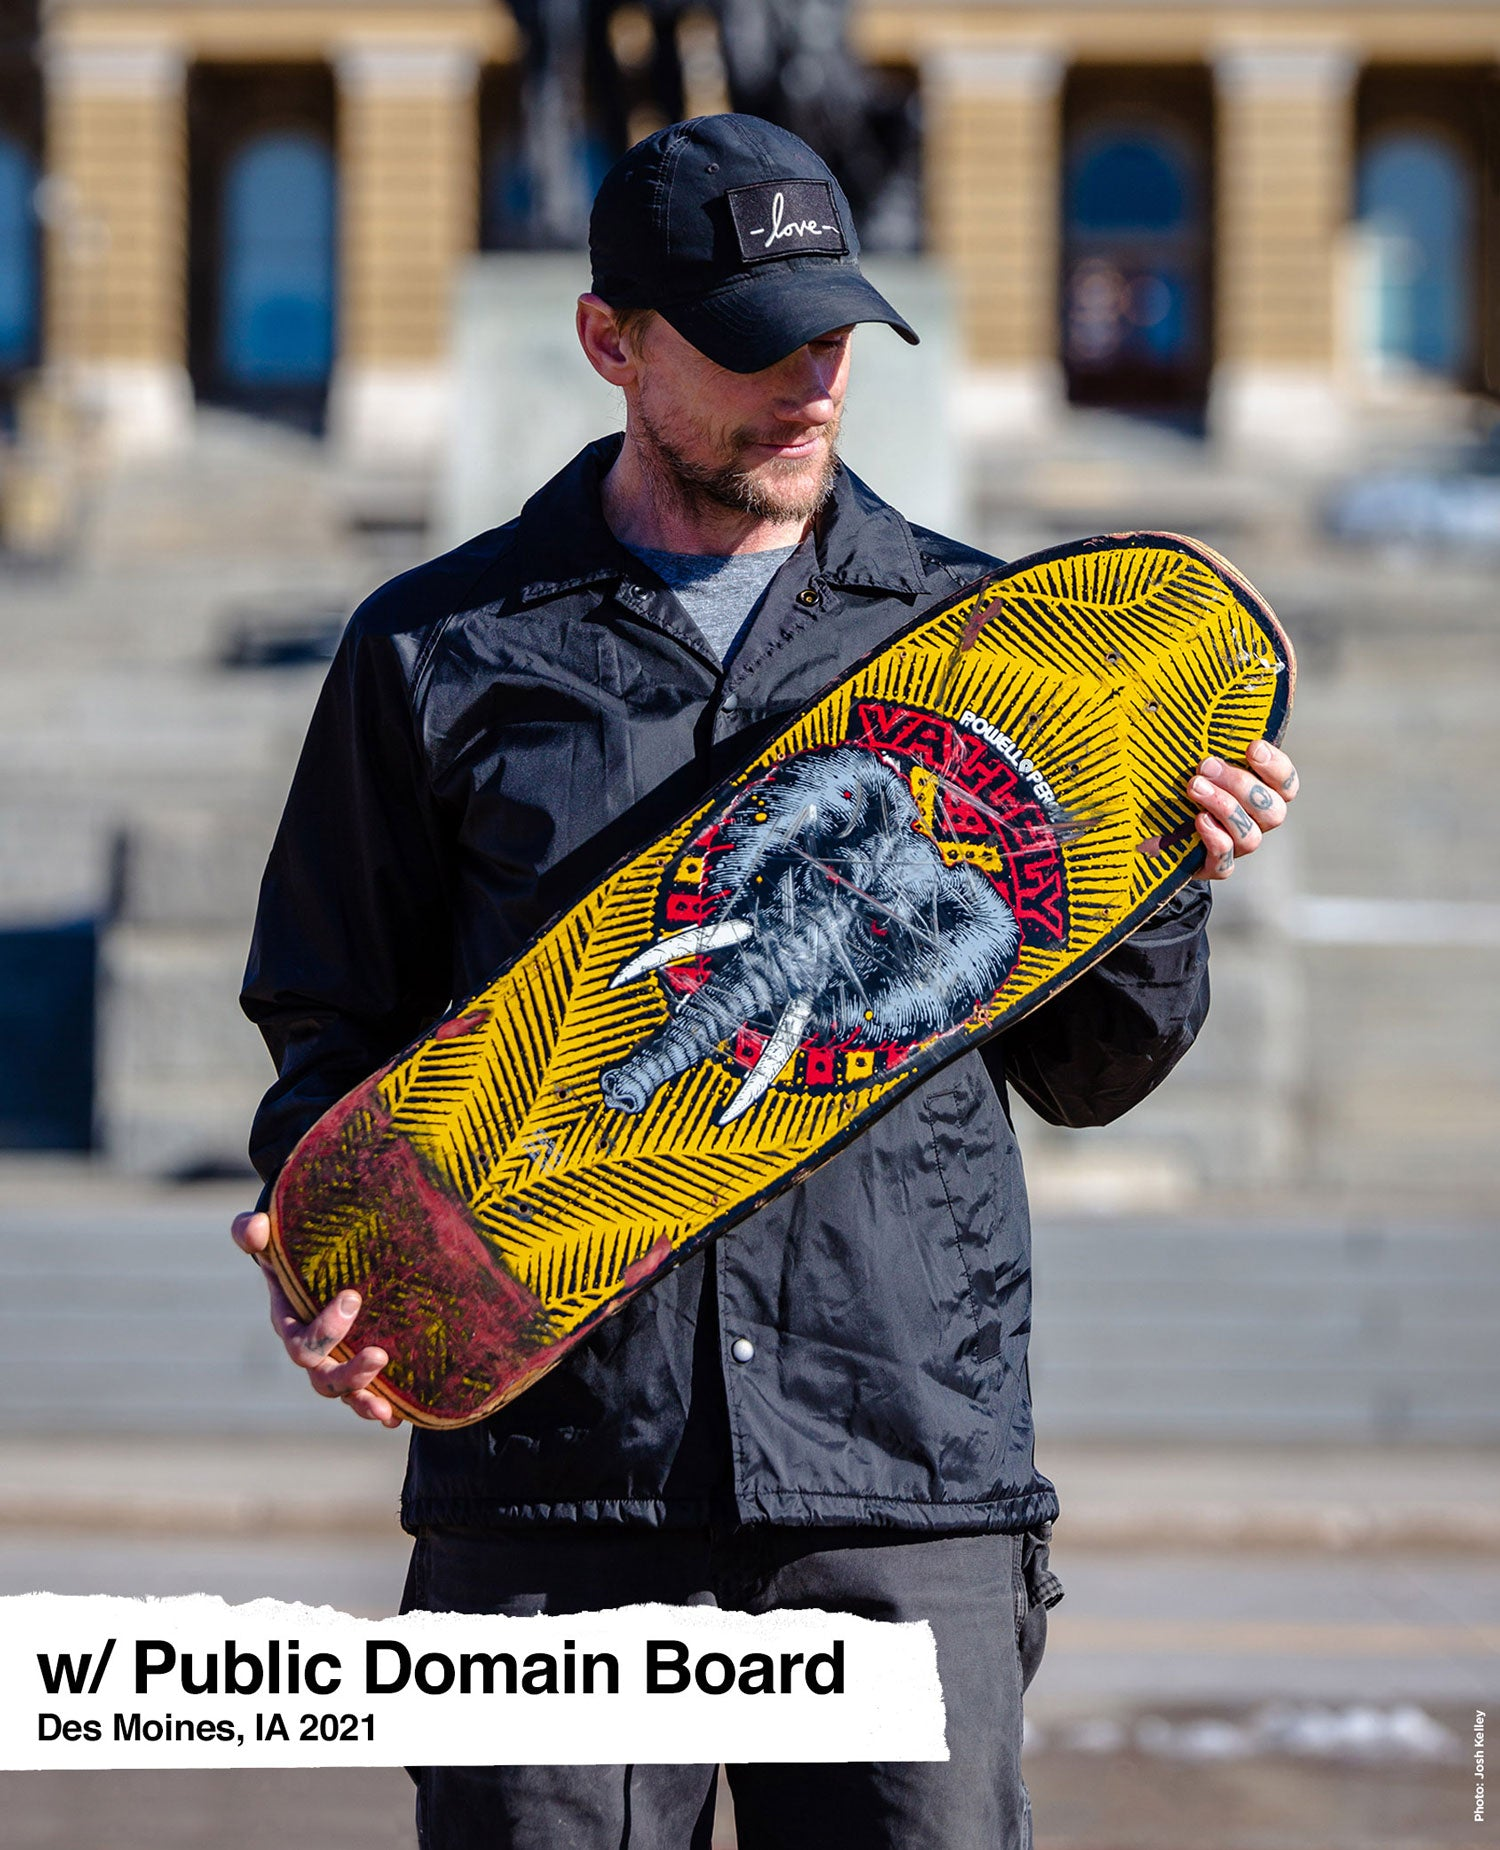 Mike Vallely Des Moines IA